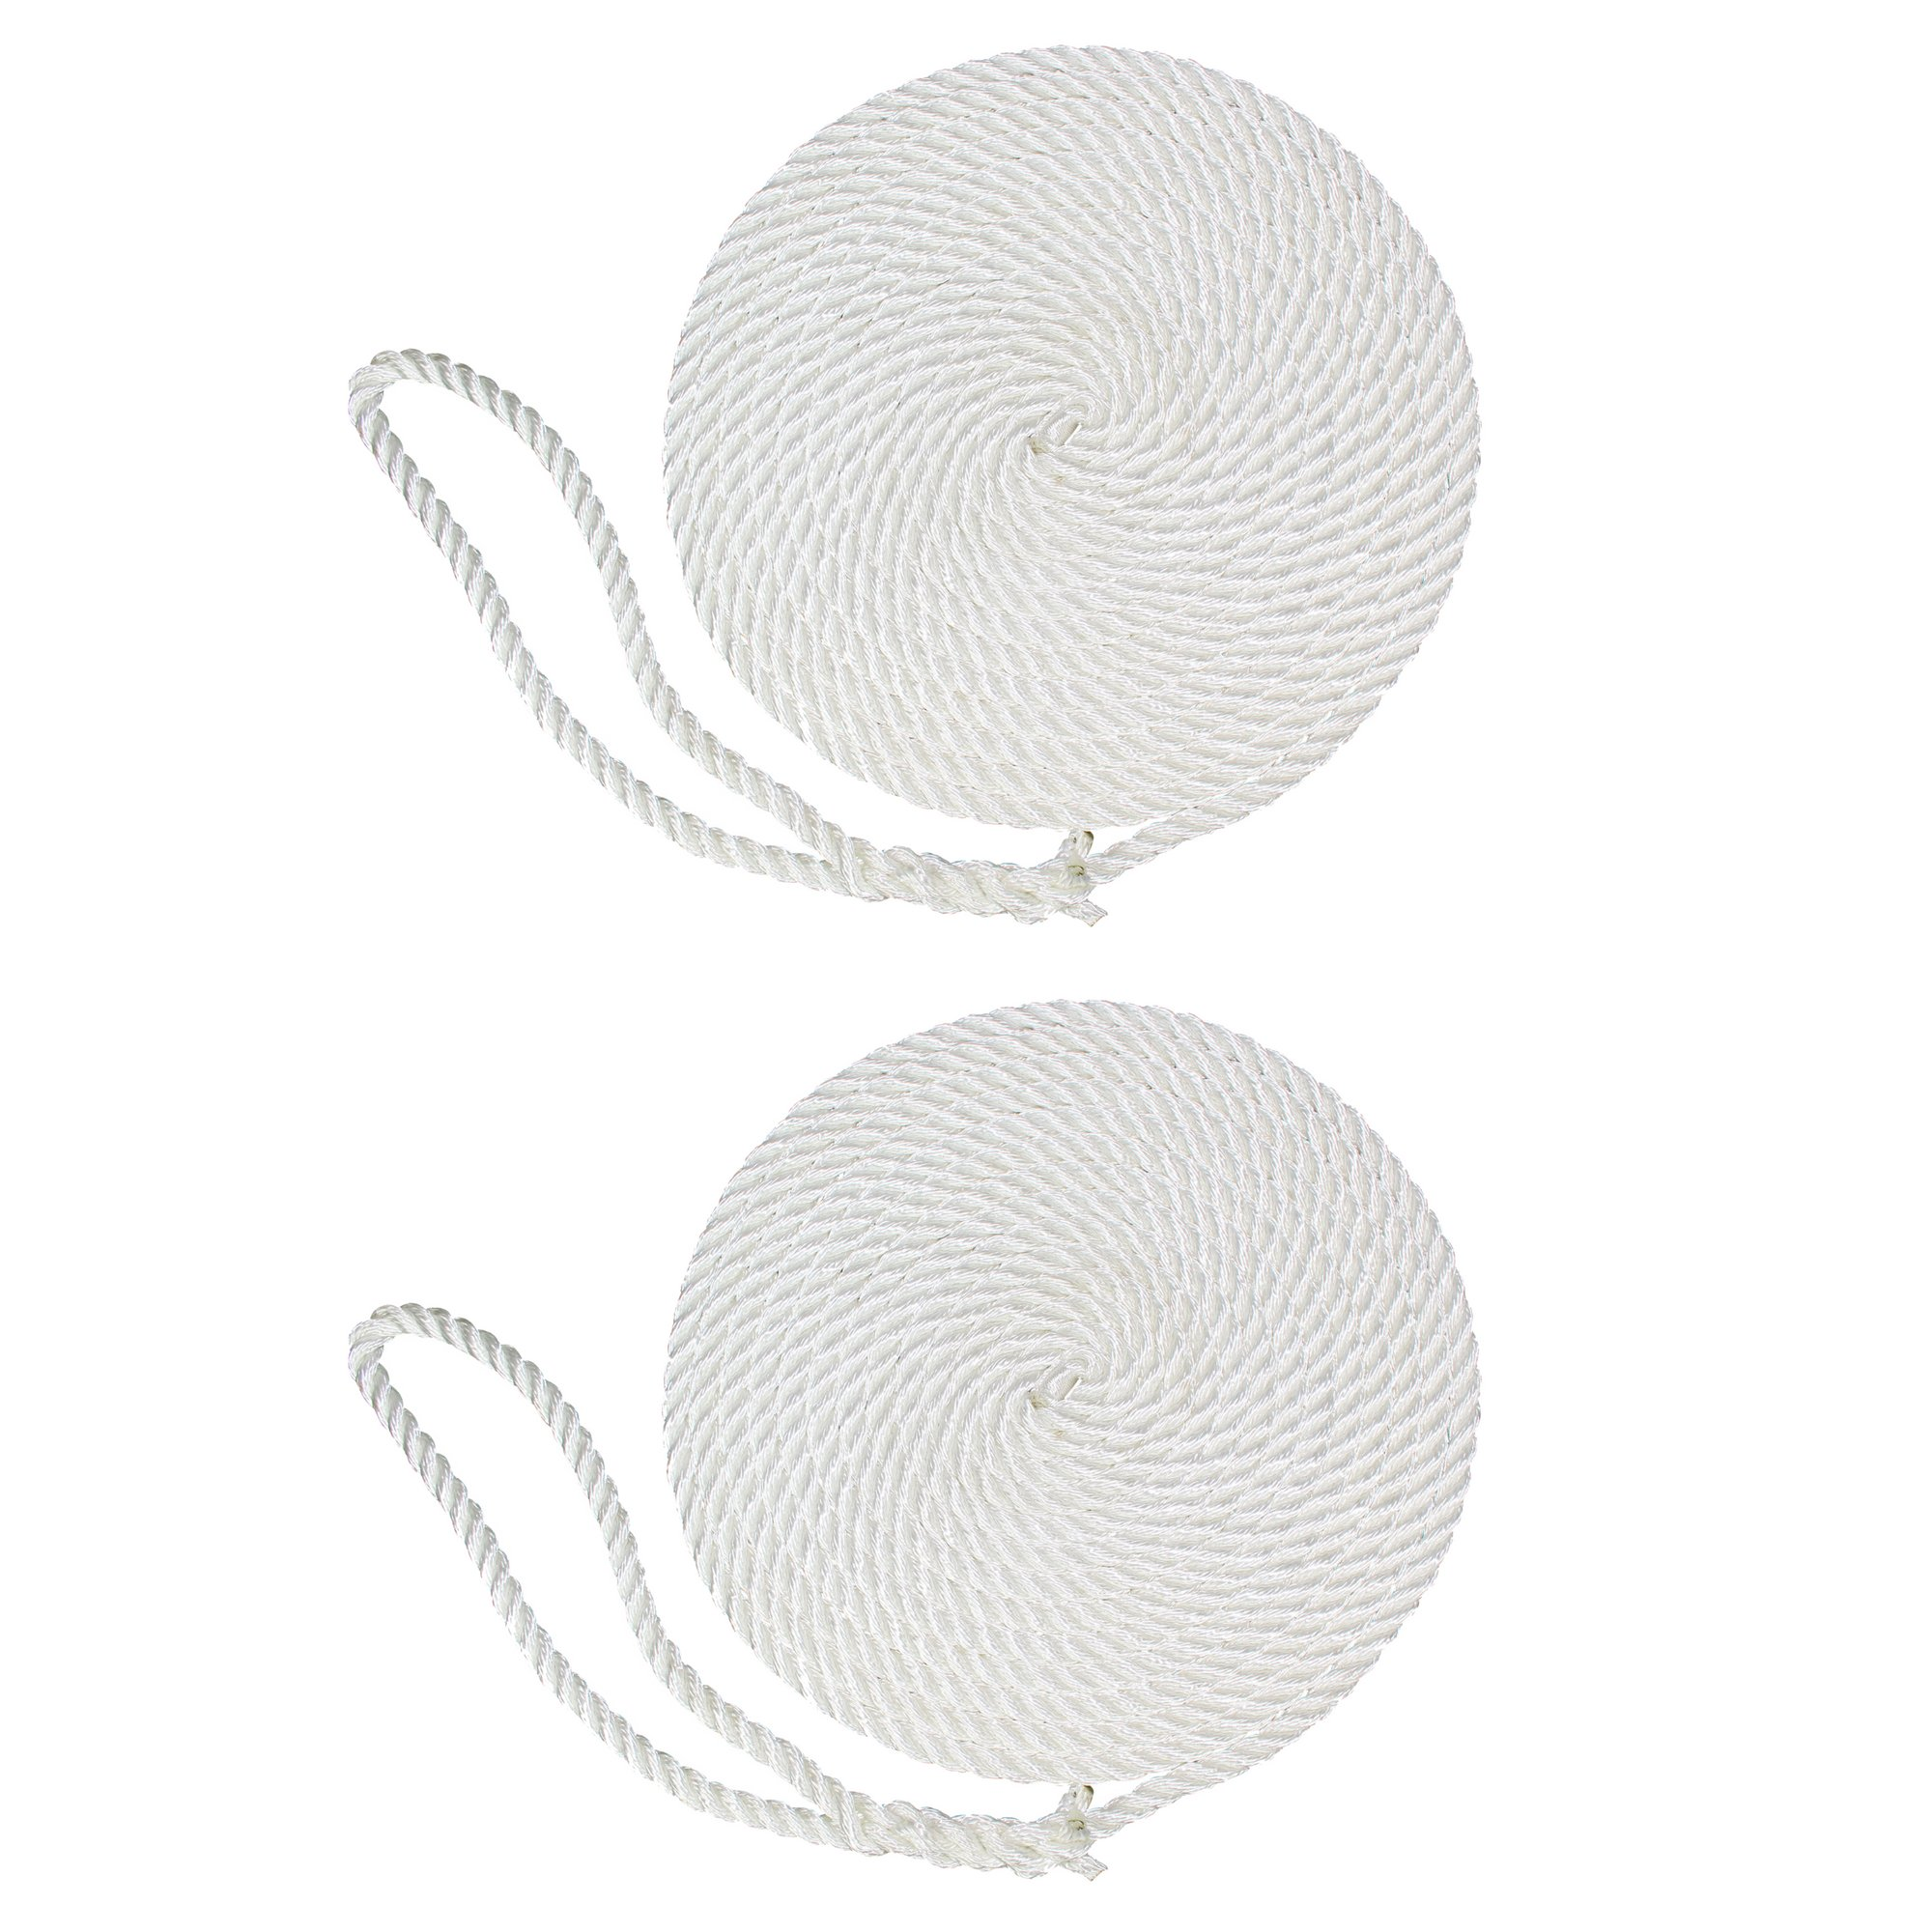 SGT KNOTS Twisted Nylon Dockline (2-Pack, 1/2 in x 25 ft, White) - 3-Strand Twist Nylon Rope Docklines - Marine Ropes for Boat/Boats - Dock Lines by SGT KNOTS